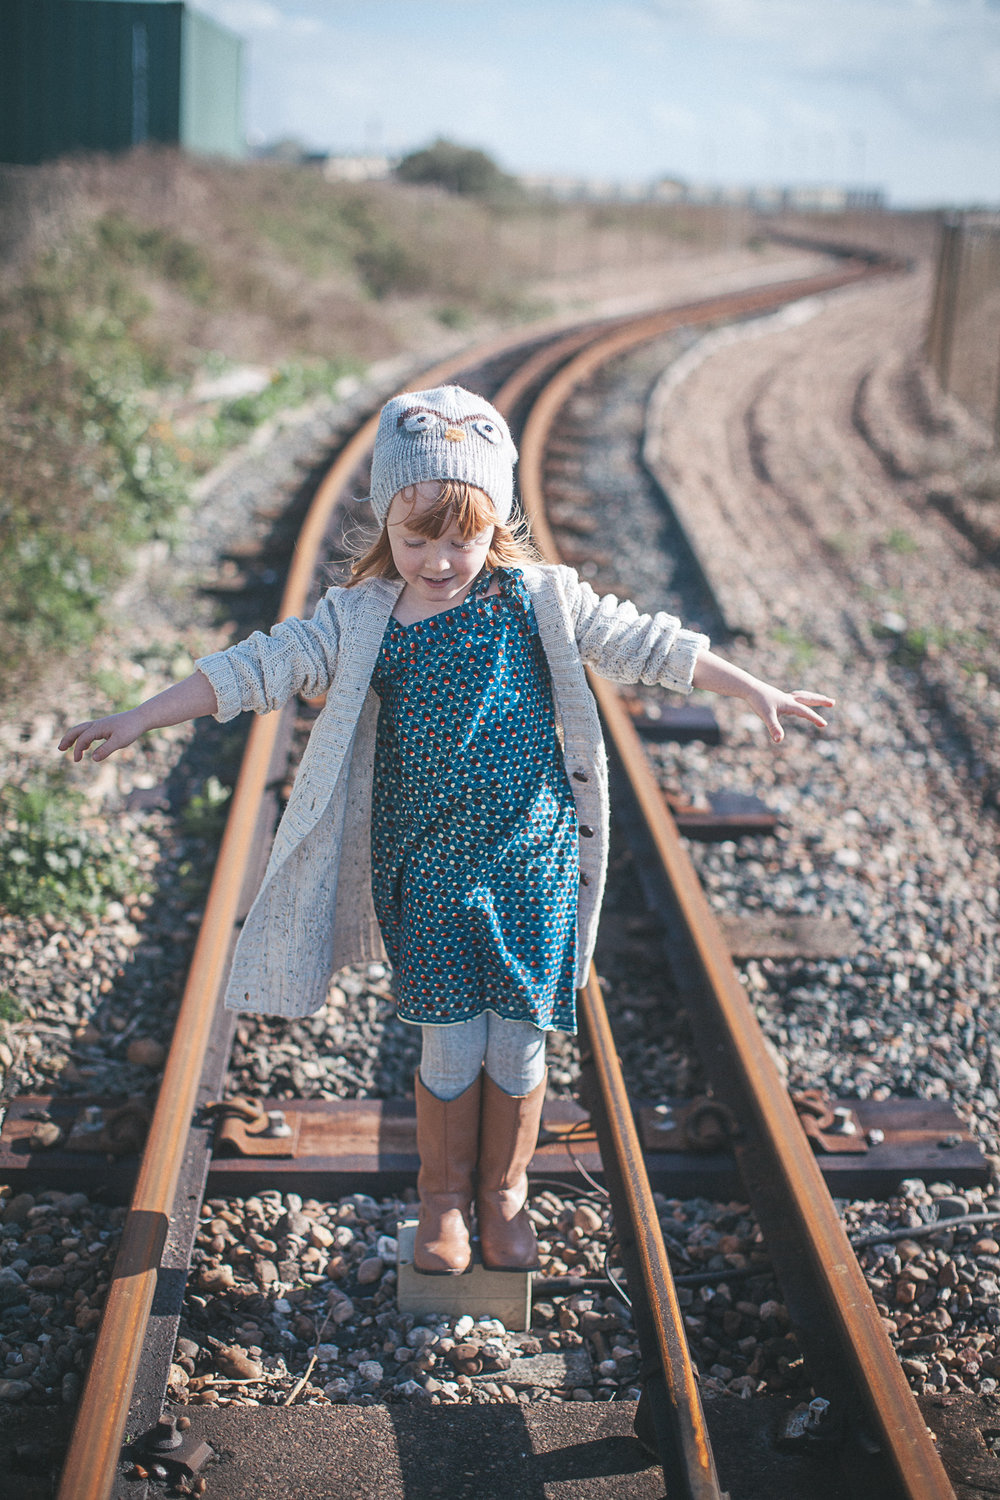 ethical_childrens_clothing_231013_022.jpg